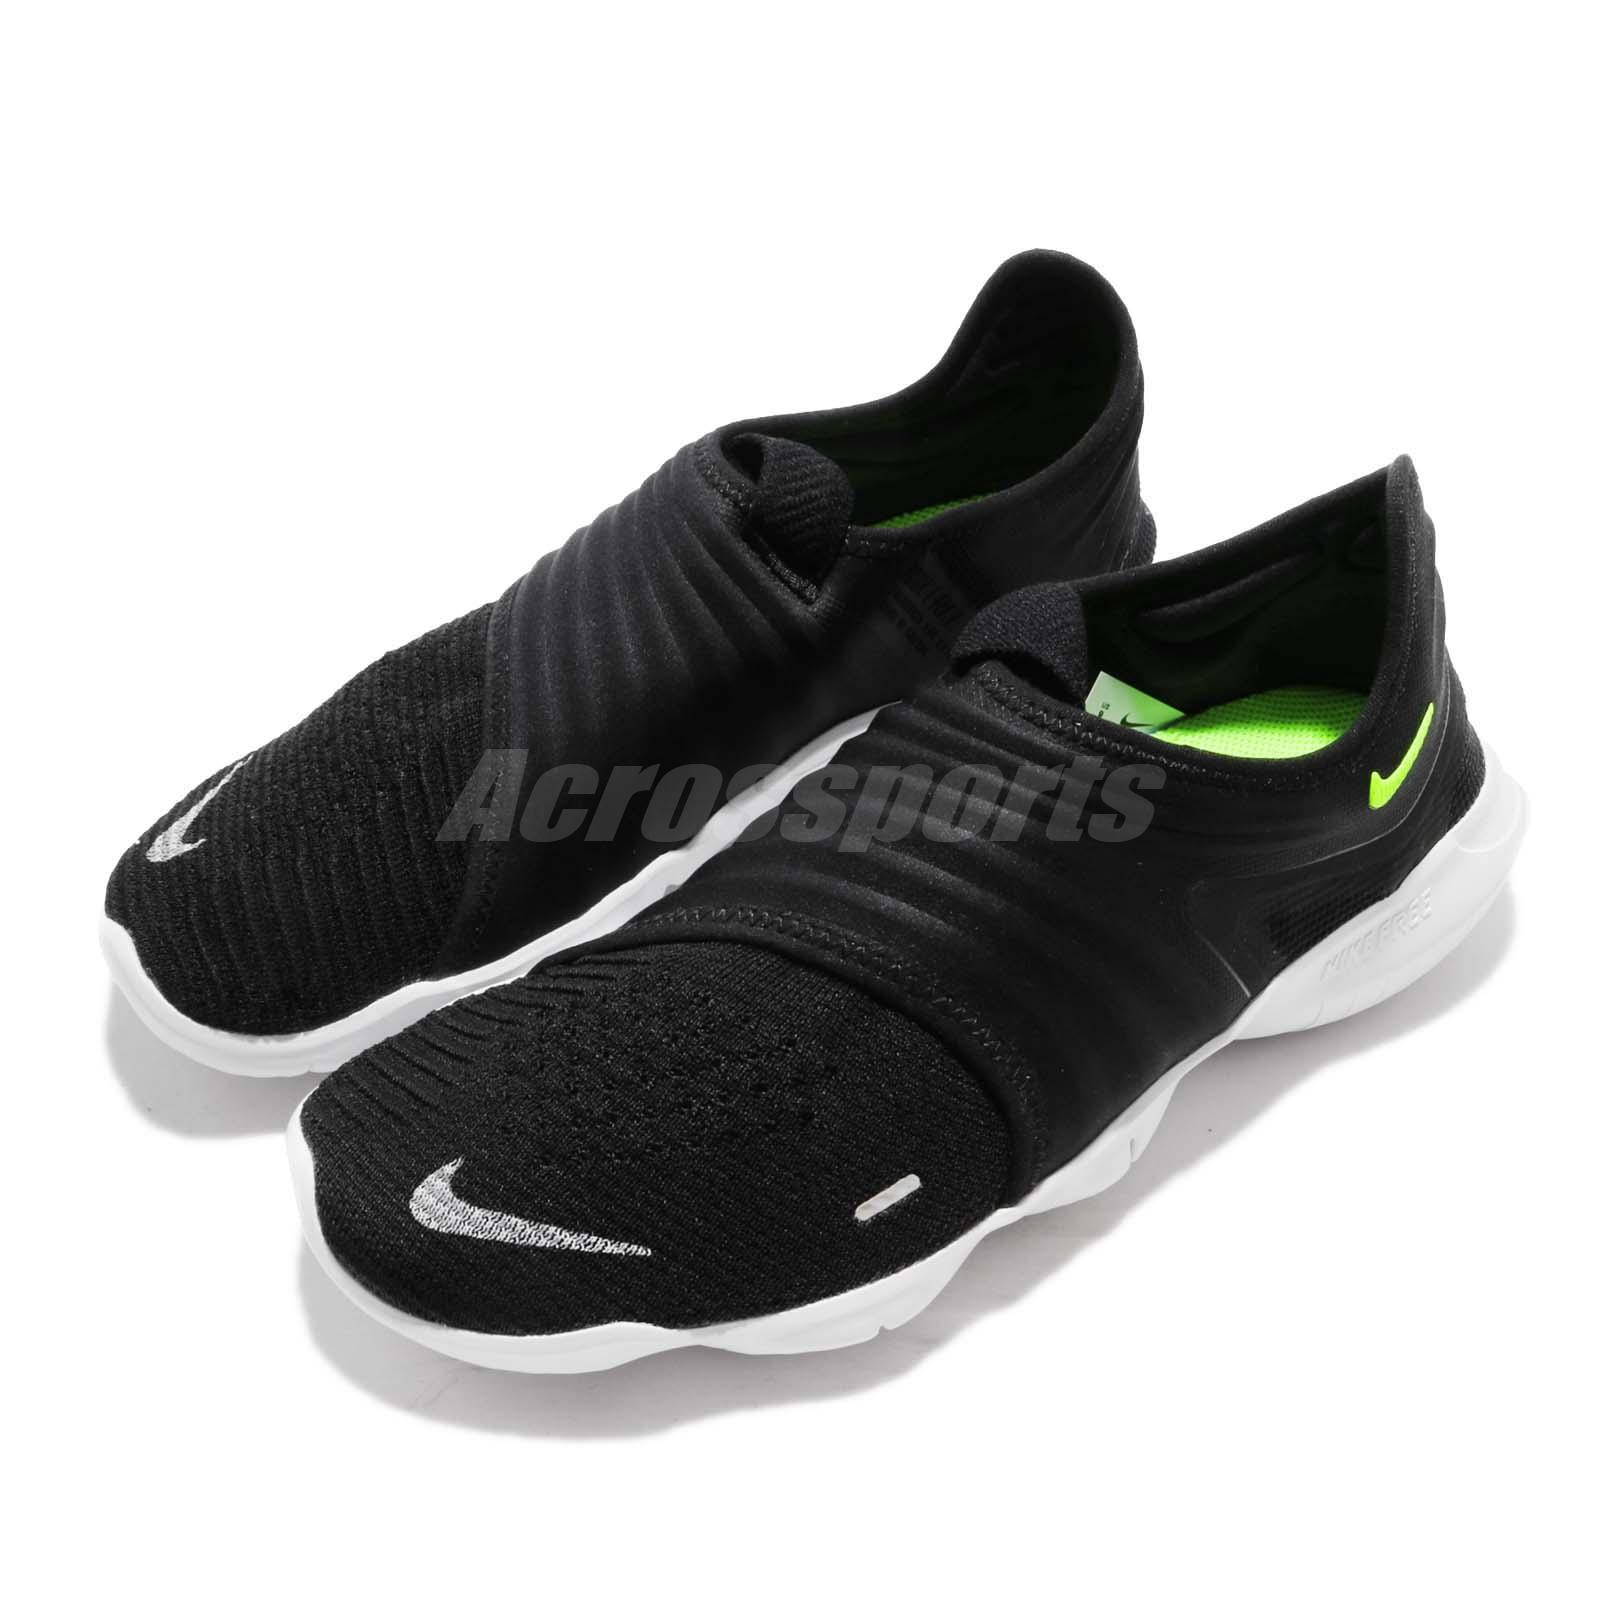 low priced 64c01 33a6c Details about Nike Free RN Flyknit 3.0 Black Volt White Men Running Shoes  Sneakers AQ5707-001